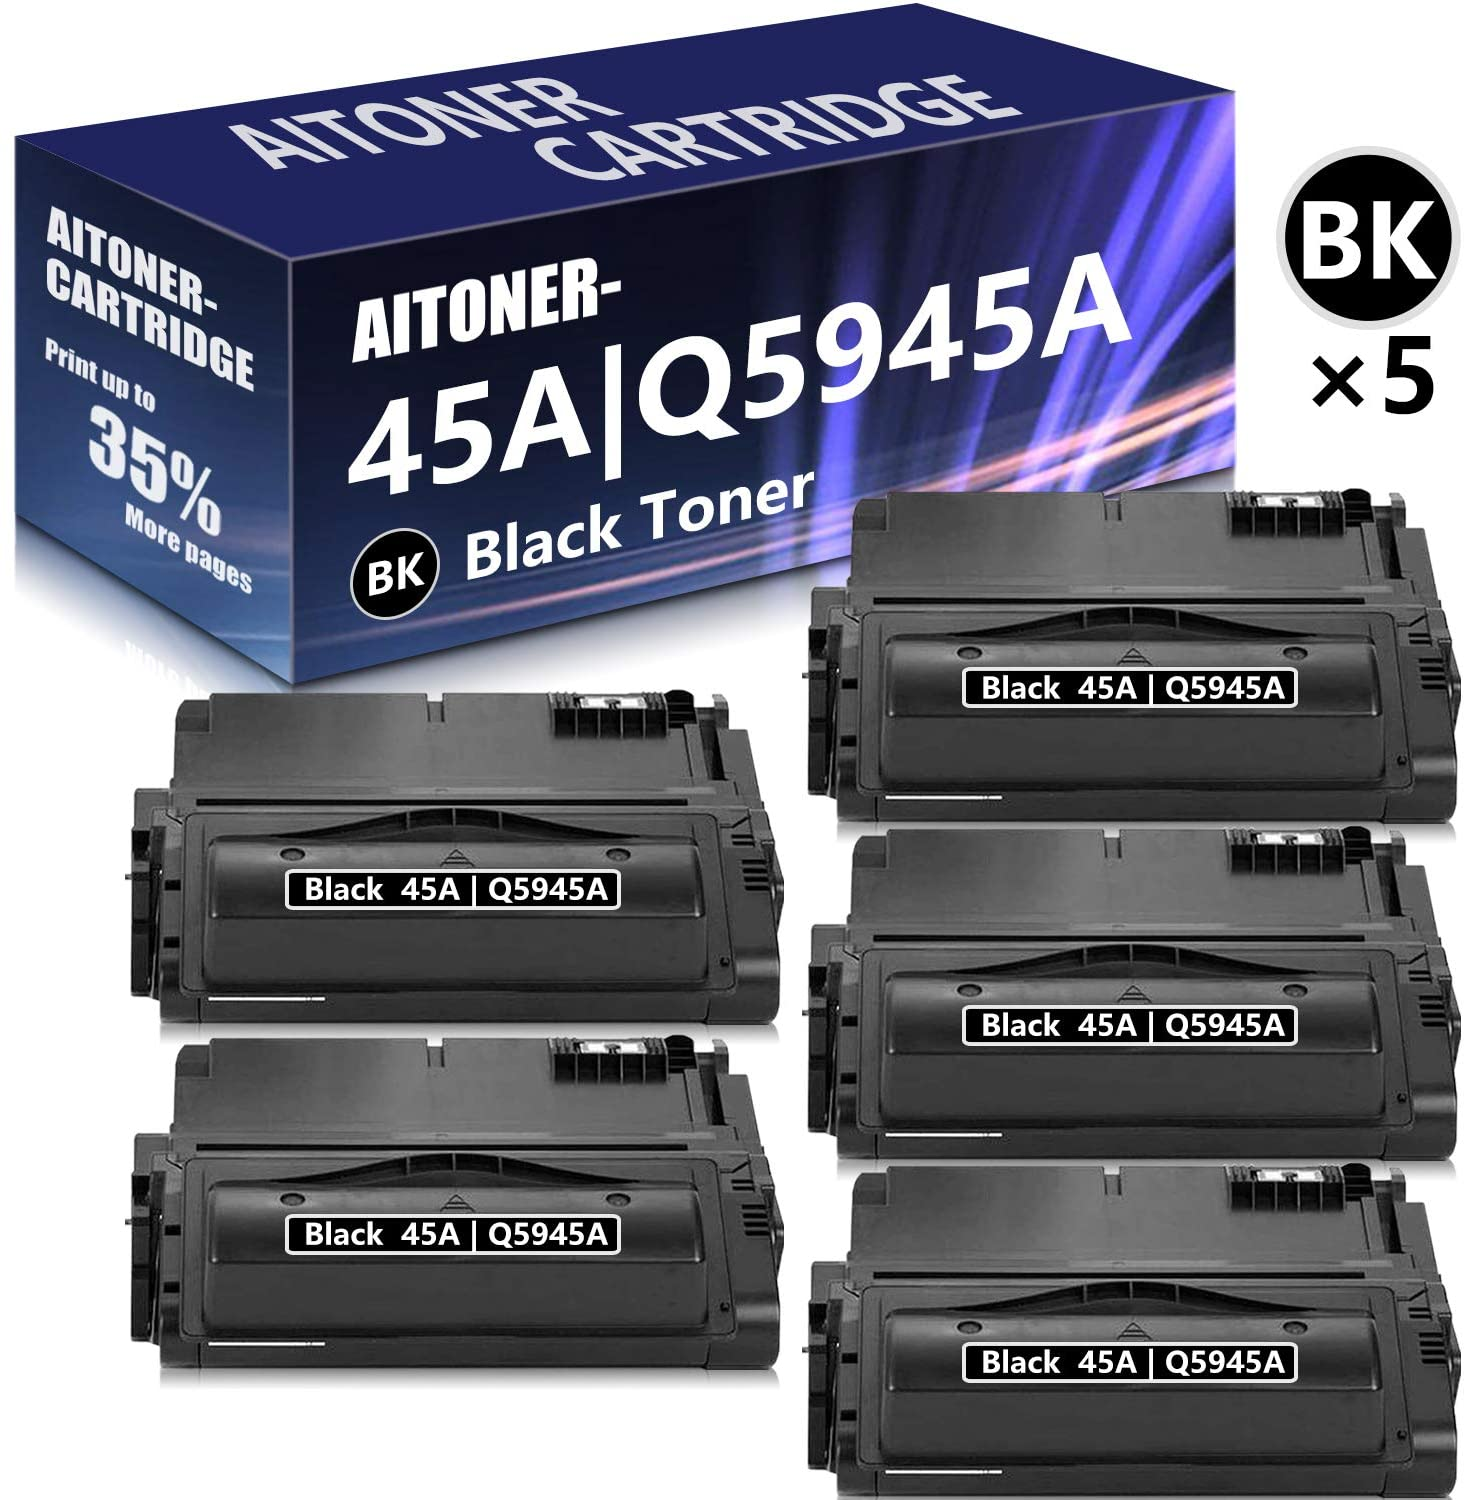 5 Pack Black Compatible for HP 45A | Q5945A Toner Cartridge Replacement for HP Laserjet 4350N 4350TN 4350DTN 4345MFP 4200 4200N 4300 4300N 4300TN 4300DTN 4240 4250 4250N 4350 Printer Toner Cartridge.